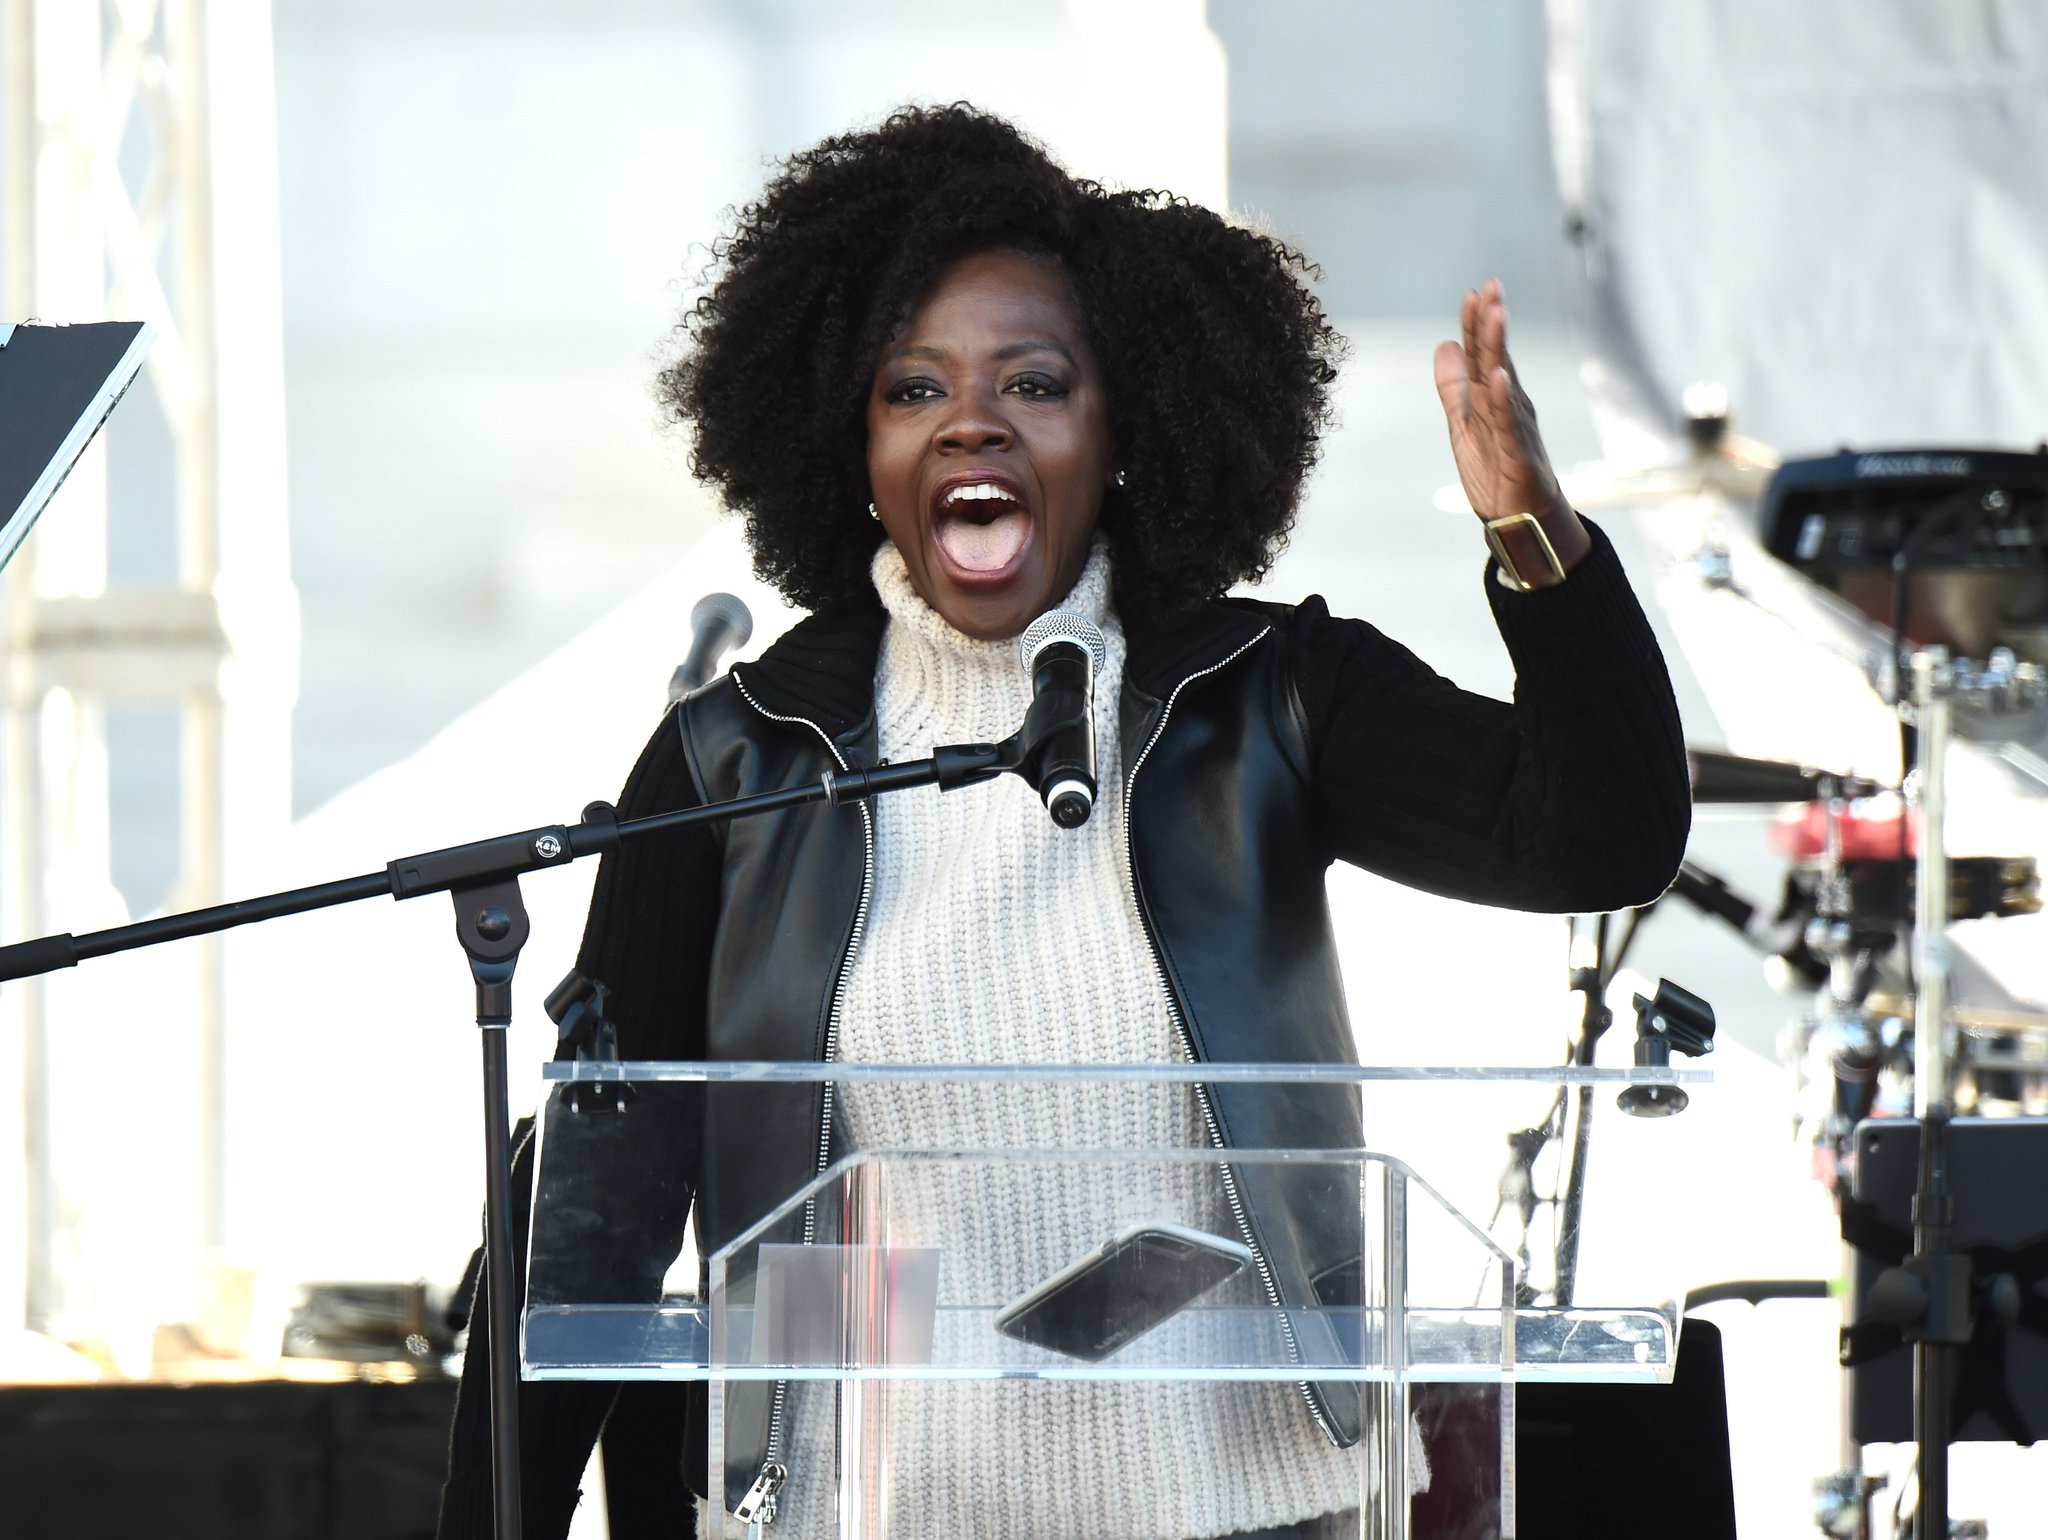 10 emotional celebrity speeches from the #WomensMarch you need to read 🙌 https://t.co/ddEyqvKDWb https://t.co/4kKUJ632sN